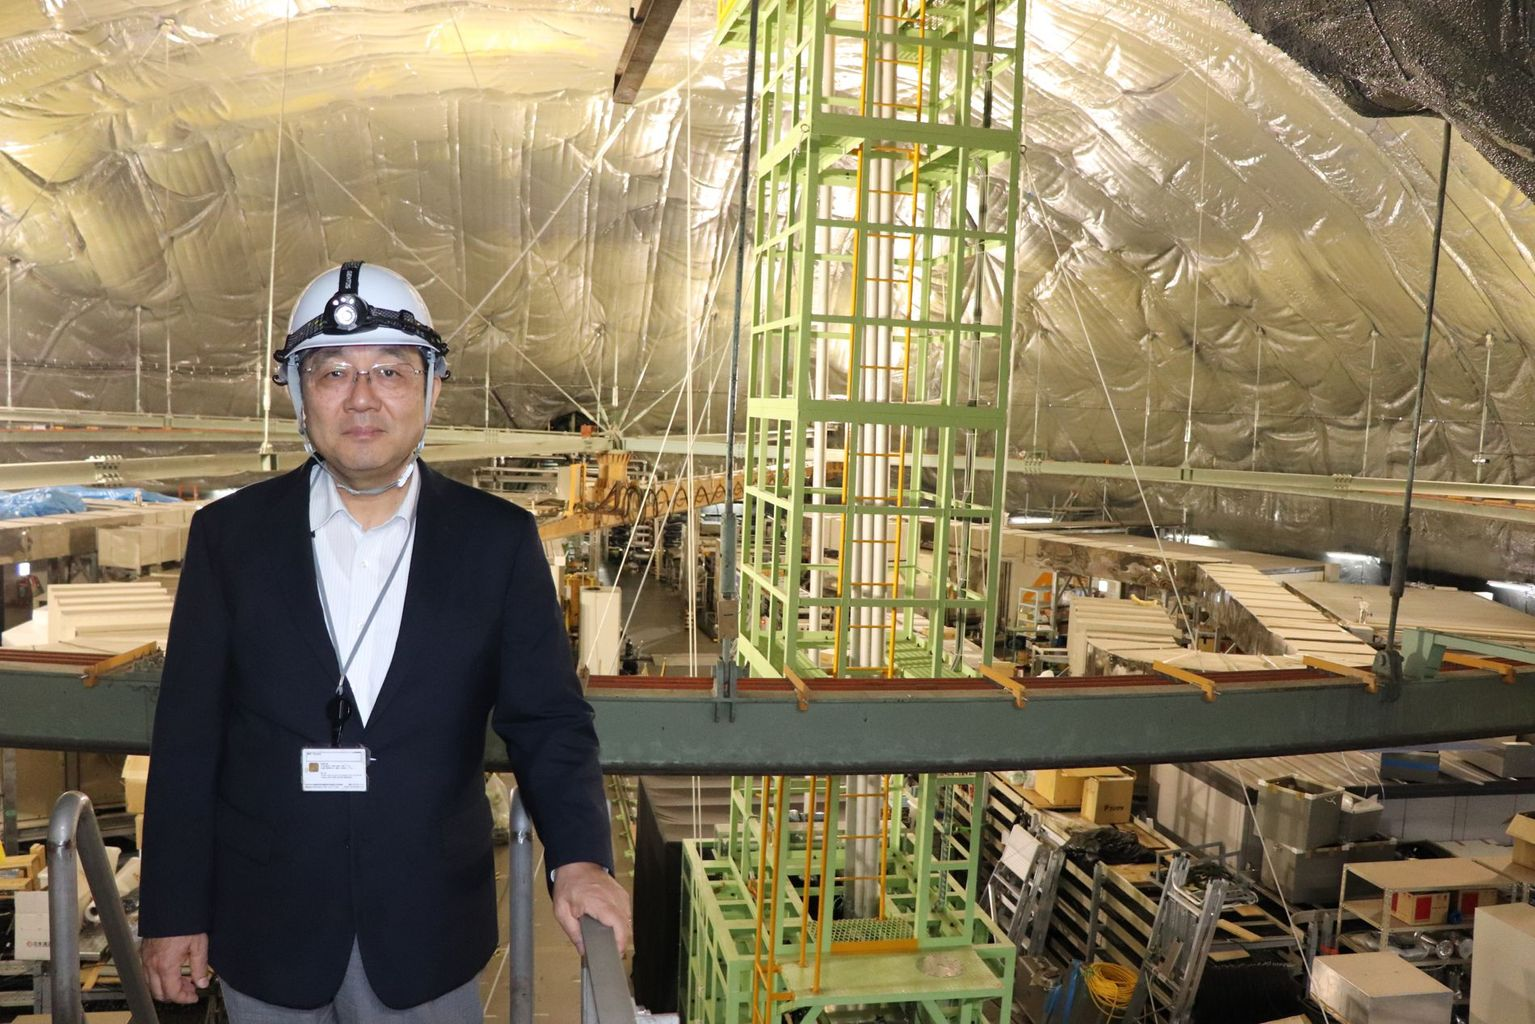 Prof. Nakahata in the rock cavern 1000 meters below ground. Directly below is the huge water tank with which the Super-Kamiokande detects neutrinos. Photo: B. Vogel